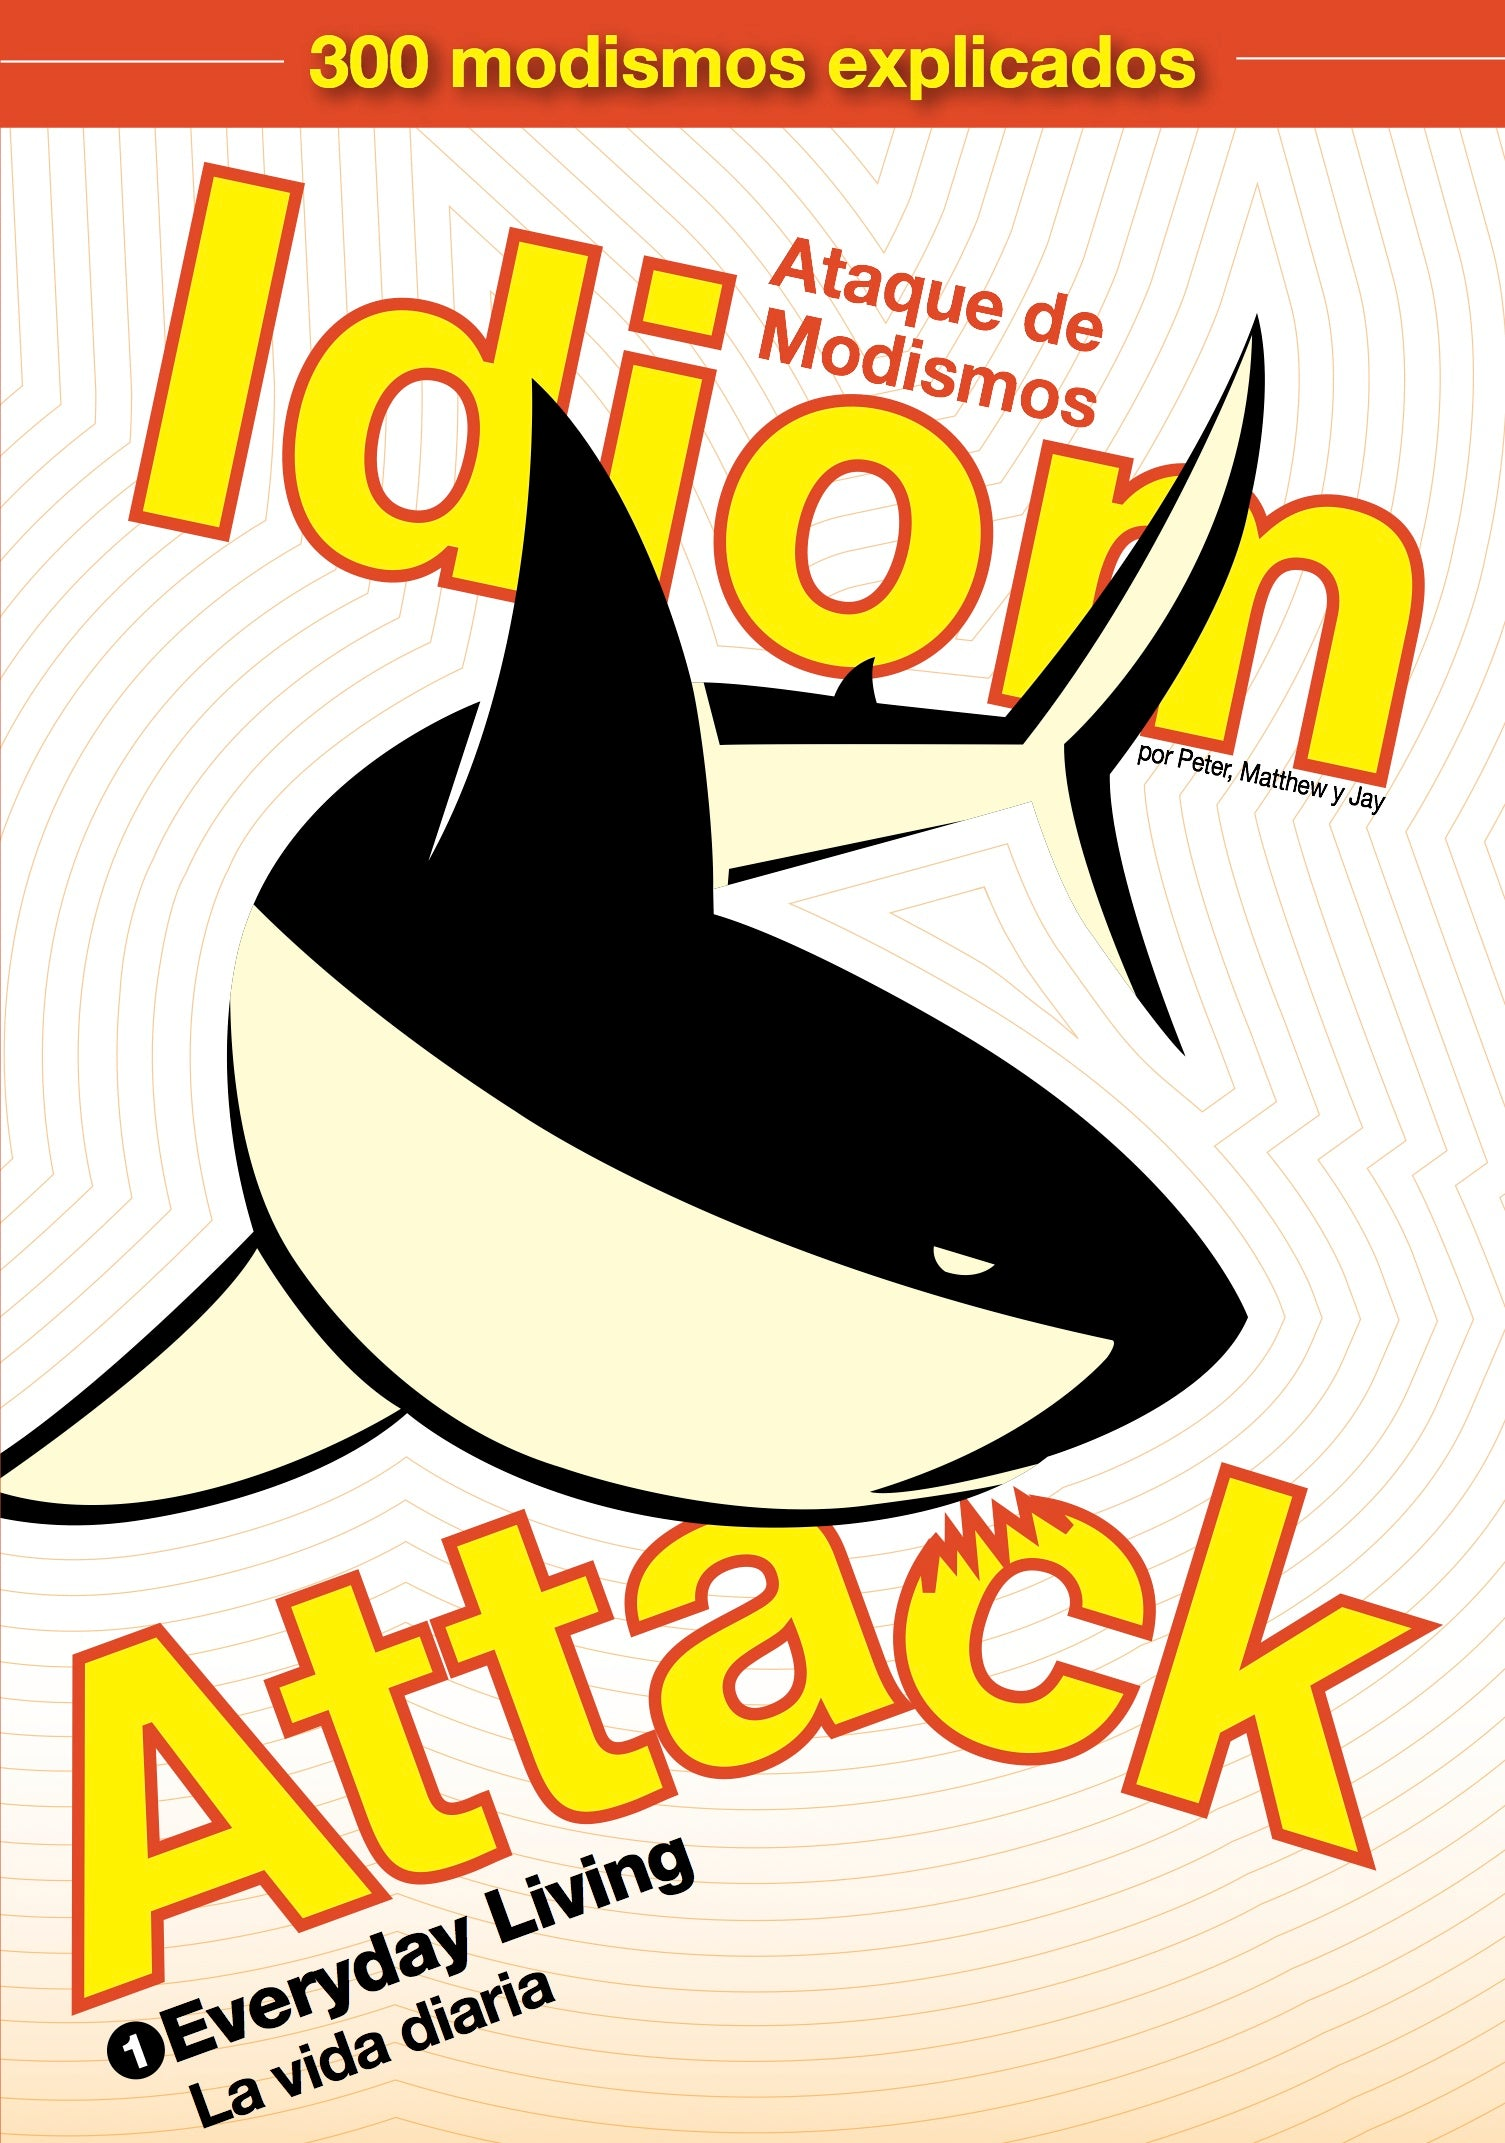 Idiom Attack, Vol. 1 - Everyday Living (Spanish Edition): Ataque de Modismos 1 - La vida diaria : English Idioms for ESL Learners: With 300+ Idioms in 25 Themed Chapters w/ free MP3 at IdiomAttack.com